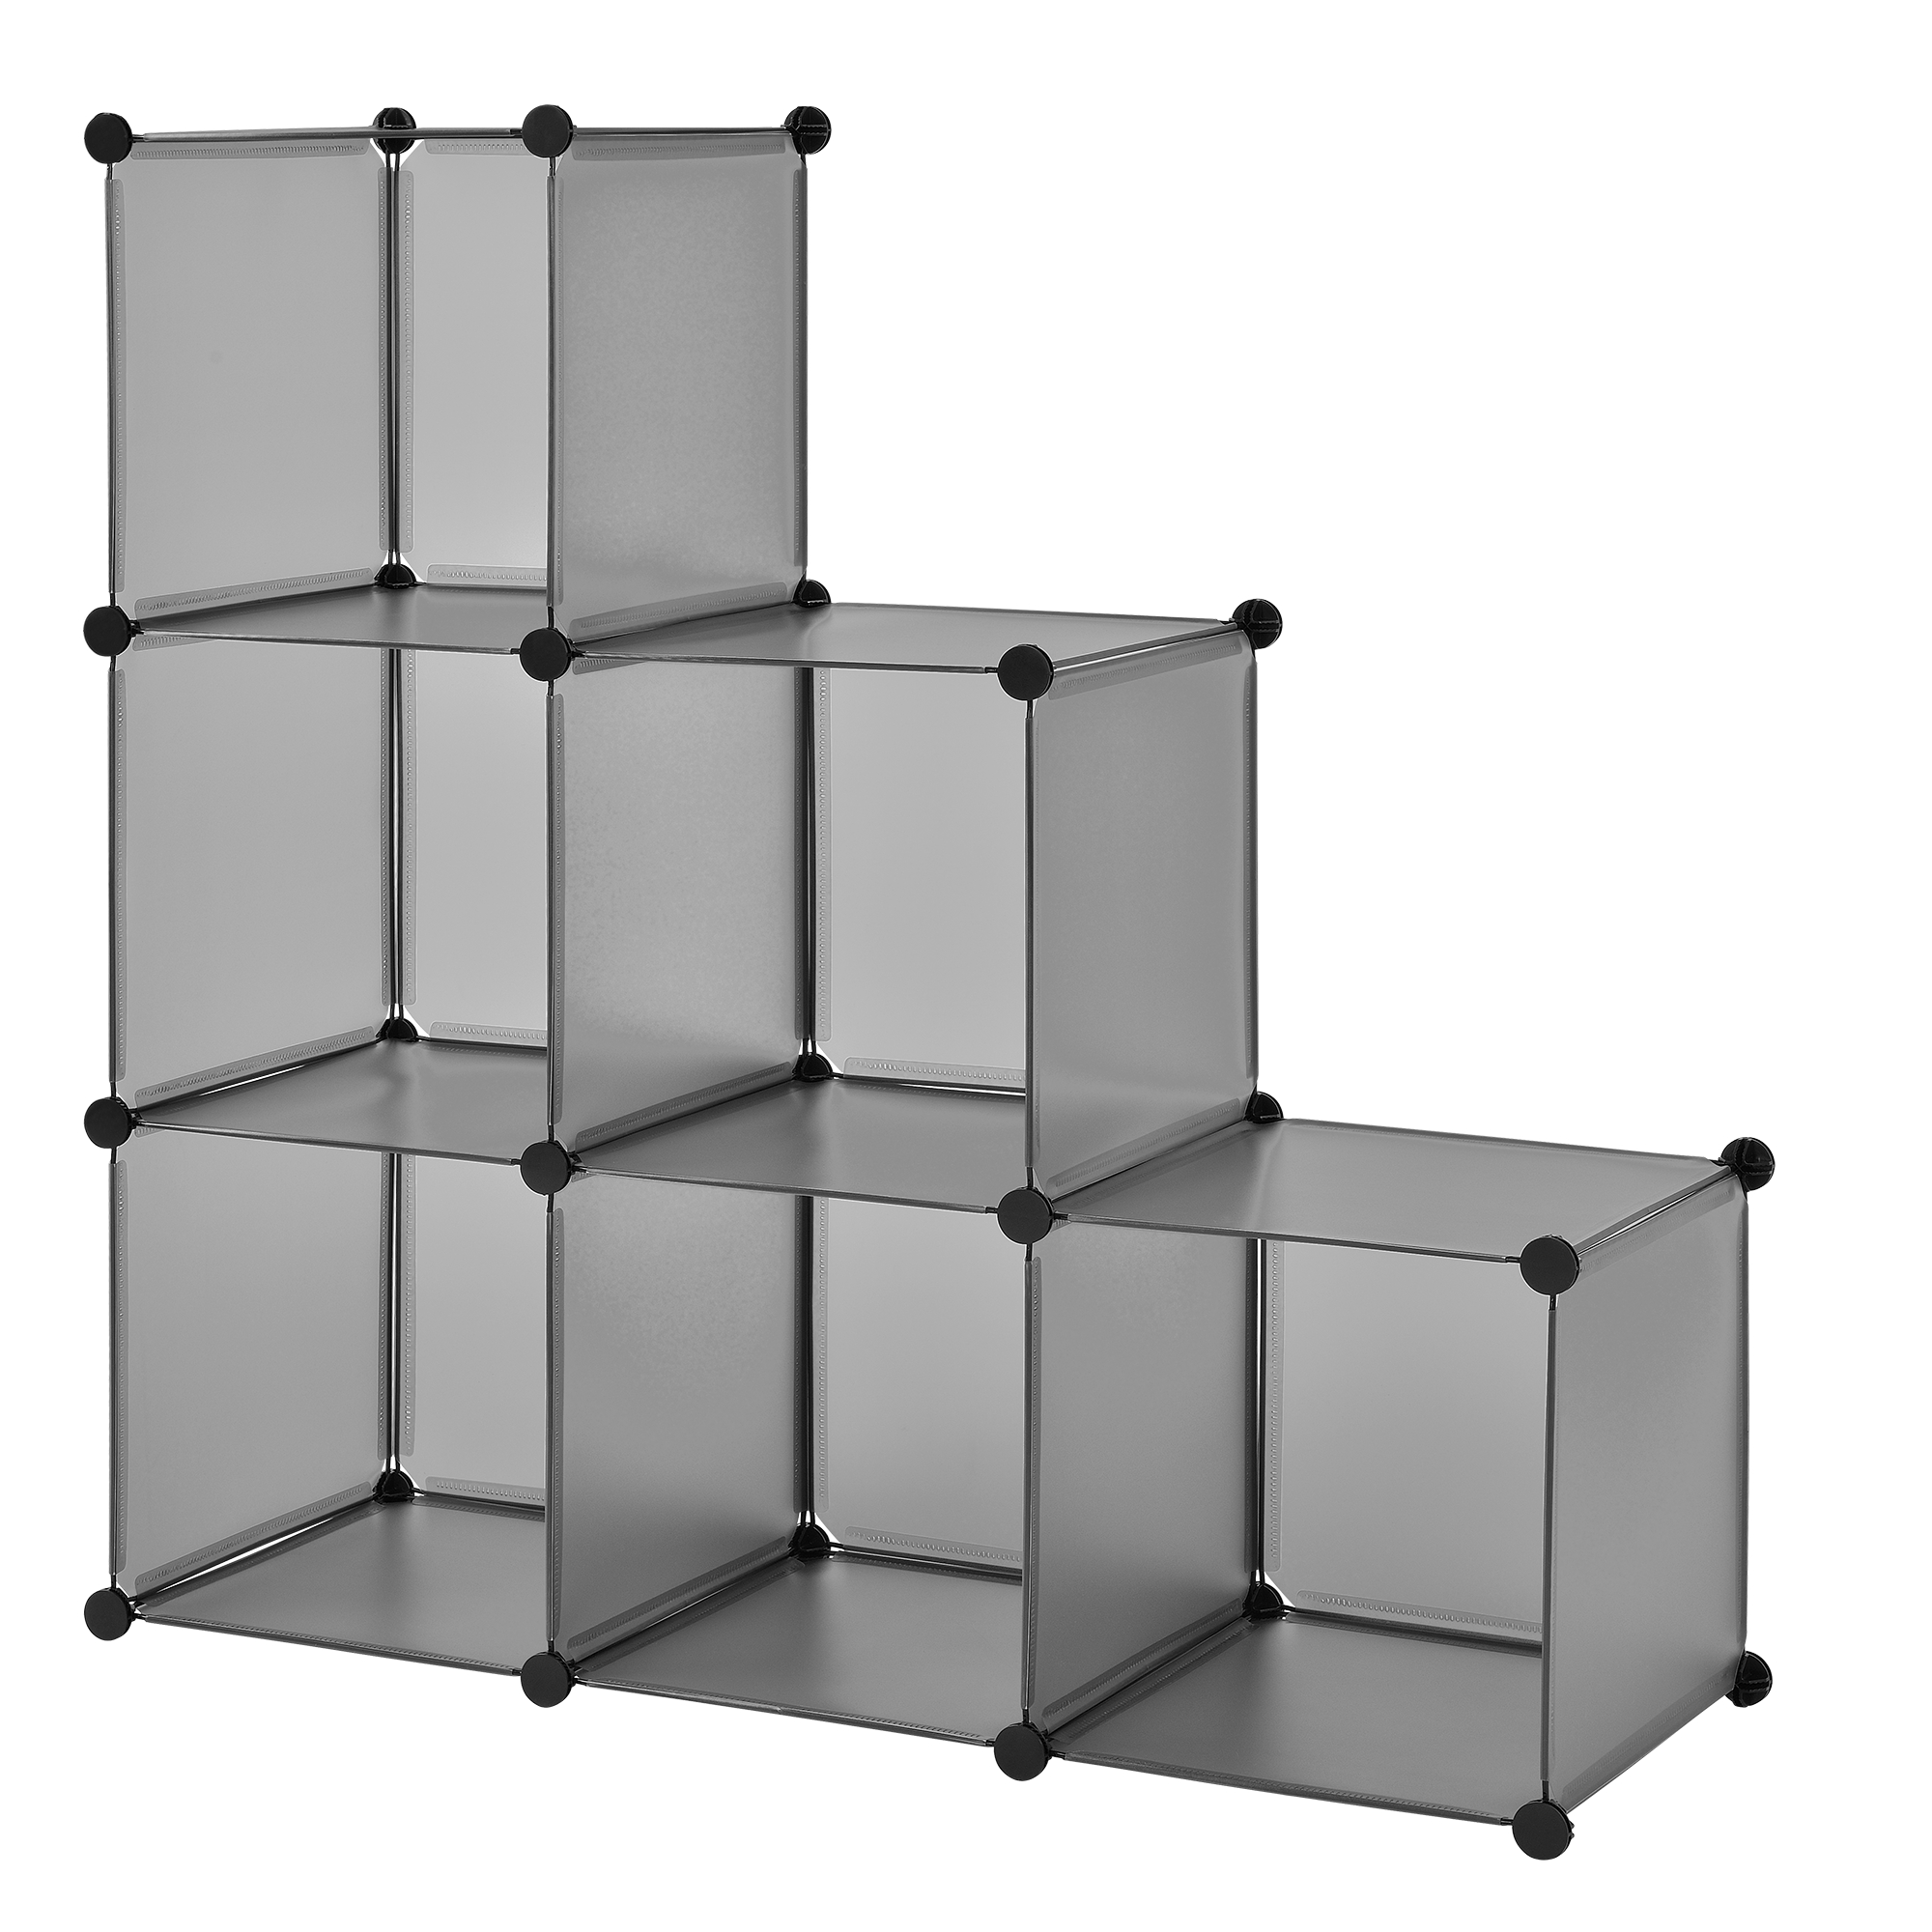 diy system regal schrank 110x110cm garderobe steck bad kleider wand ebay. Black Bedroom Furniture Sets. Home Design Ideas